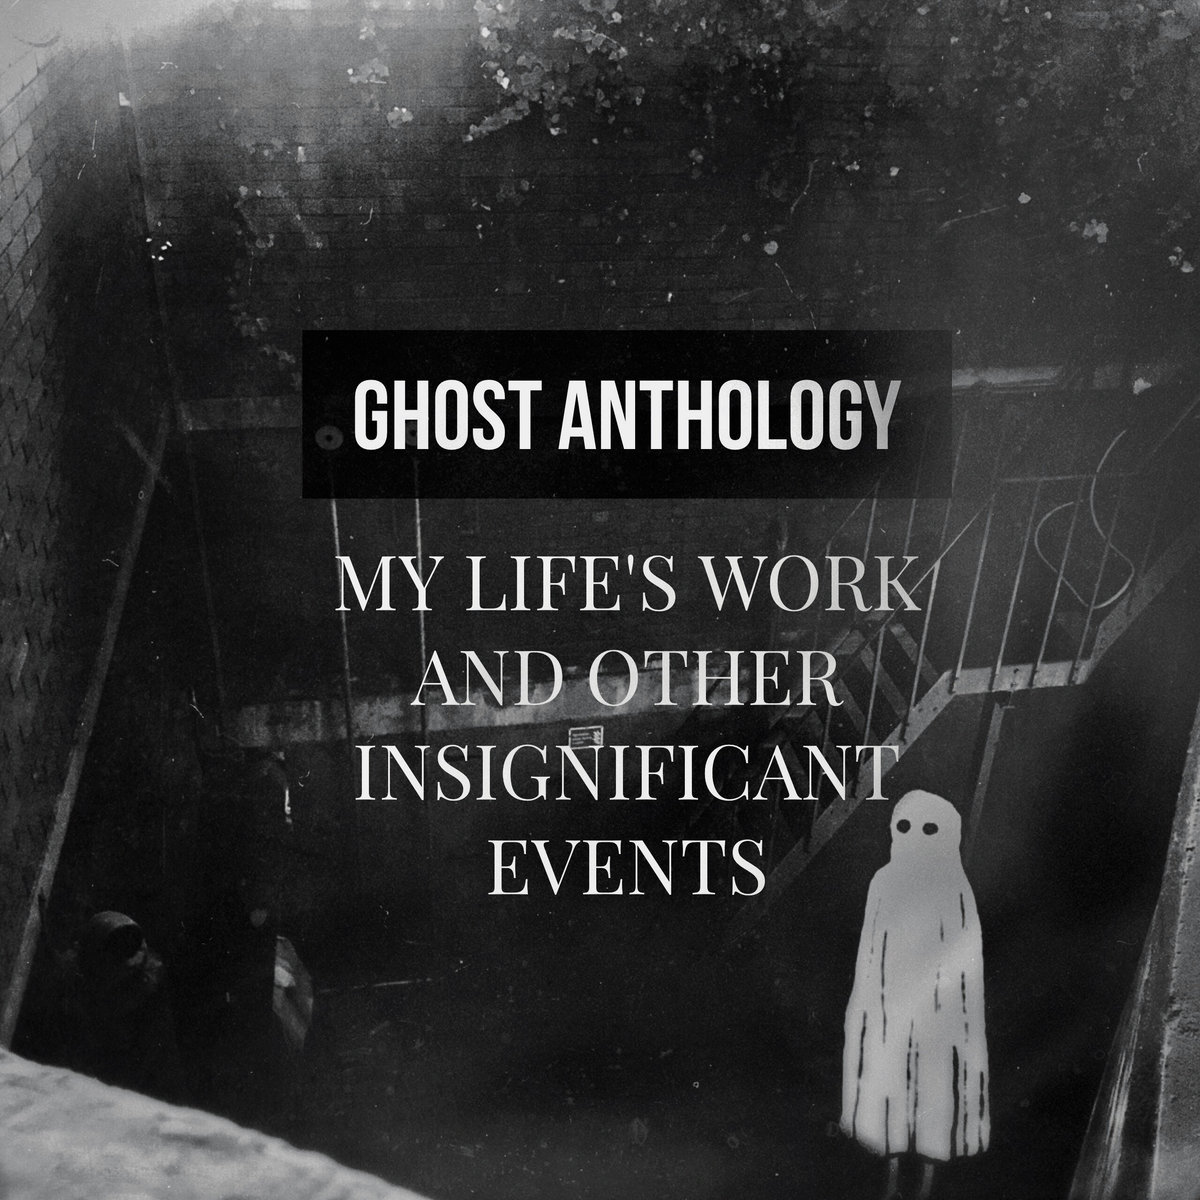 Ghost Anthology - My Life's Work and Other Insignificant Events